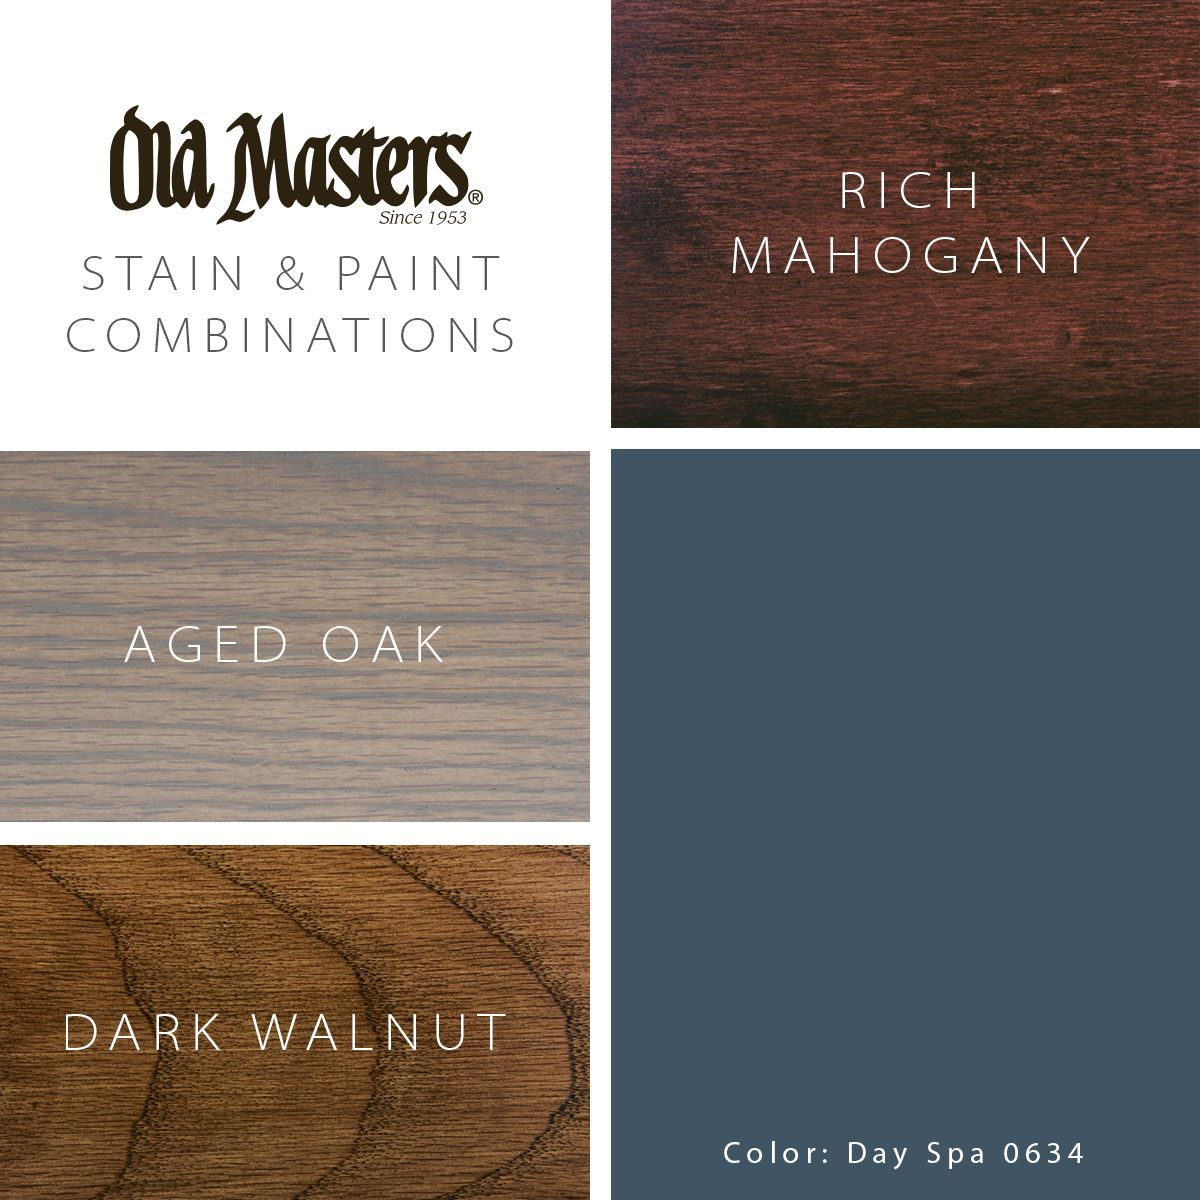 Summer Paint Stain Combos For Your Home Wood Stain Colors Staining Wood Walnut Wood Texture